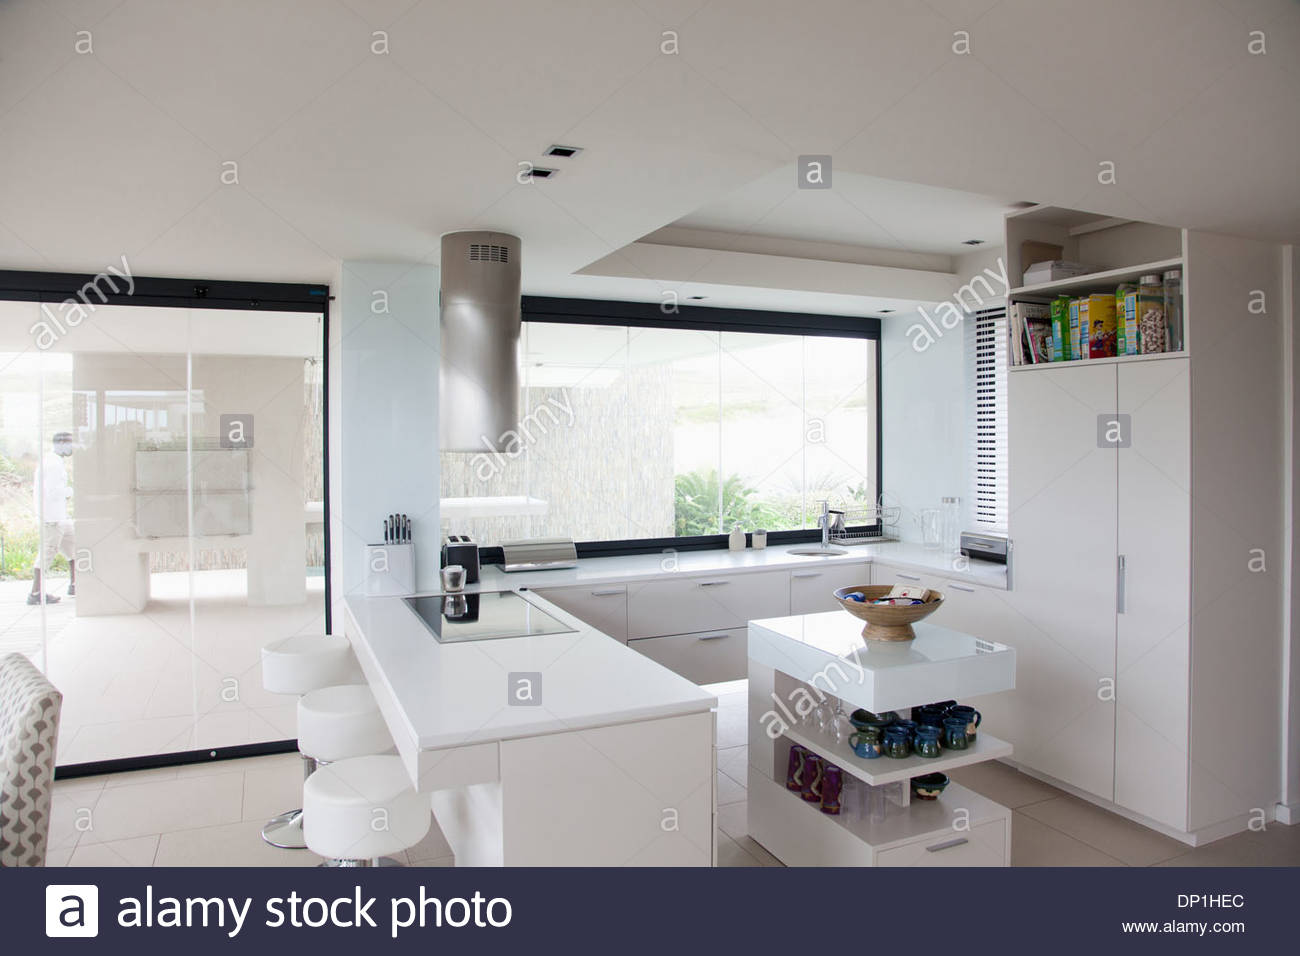 View of modern kitchen - Stock Image